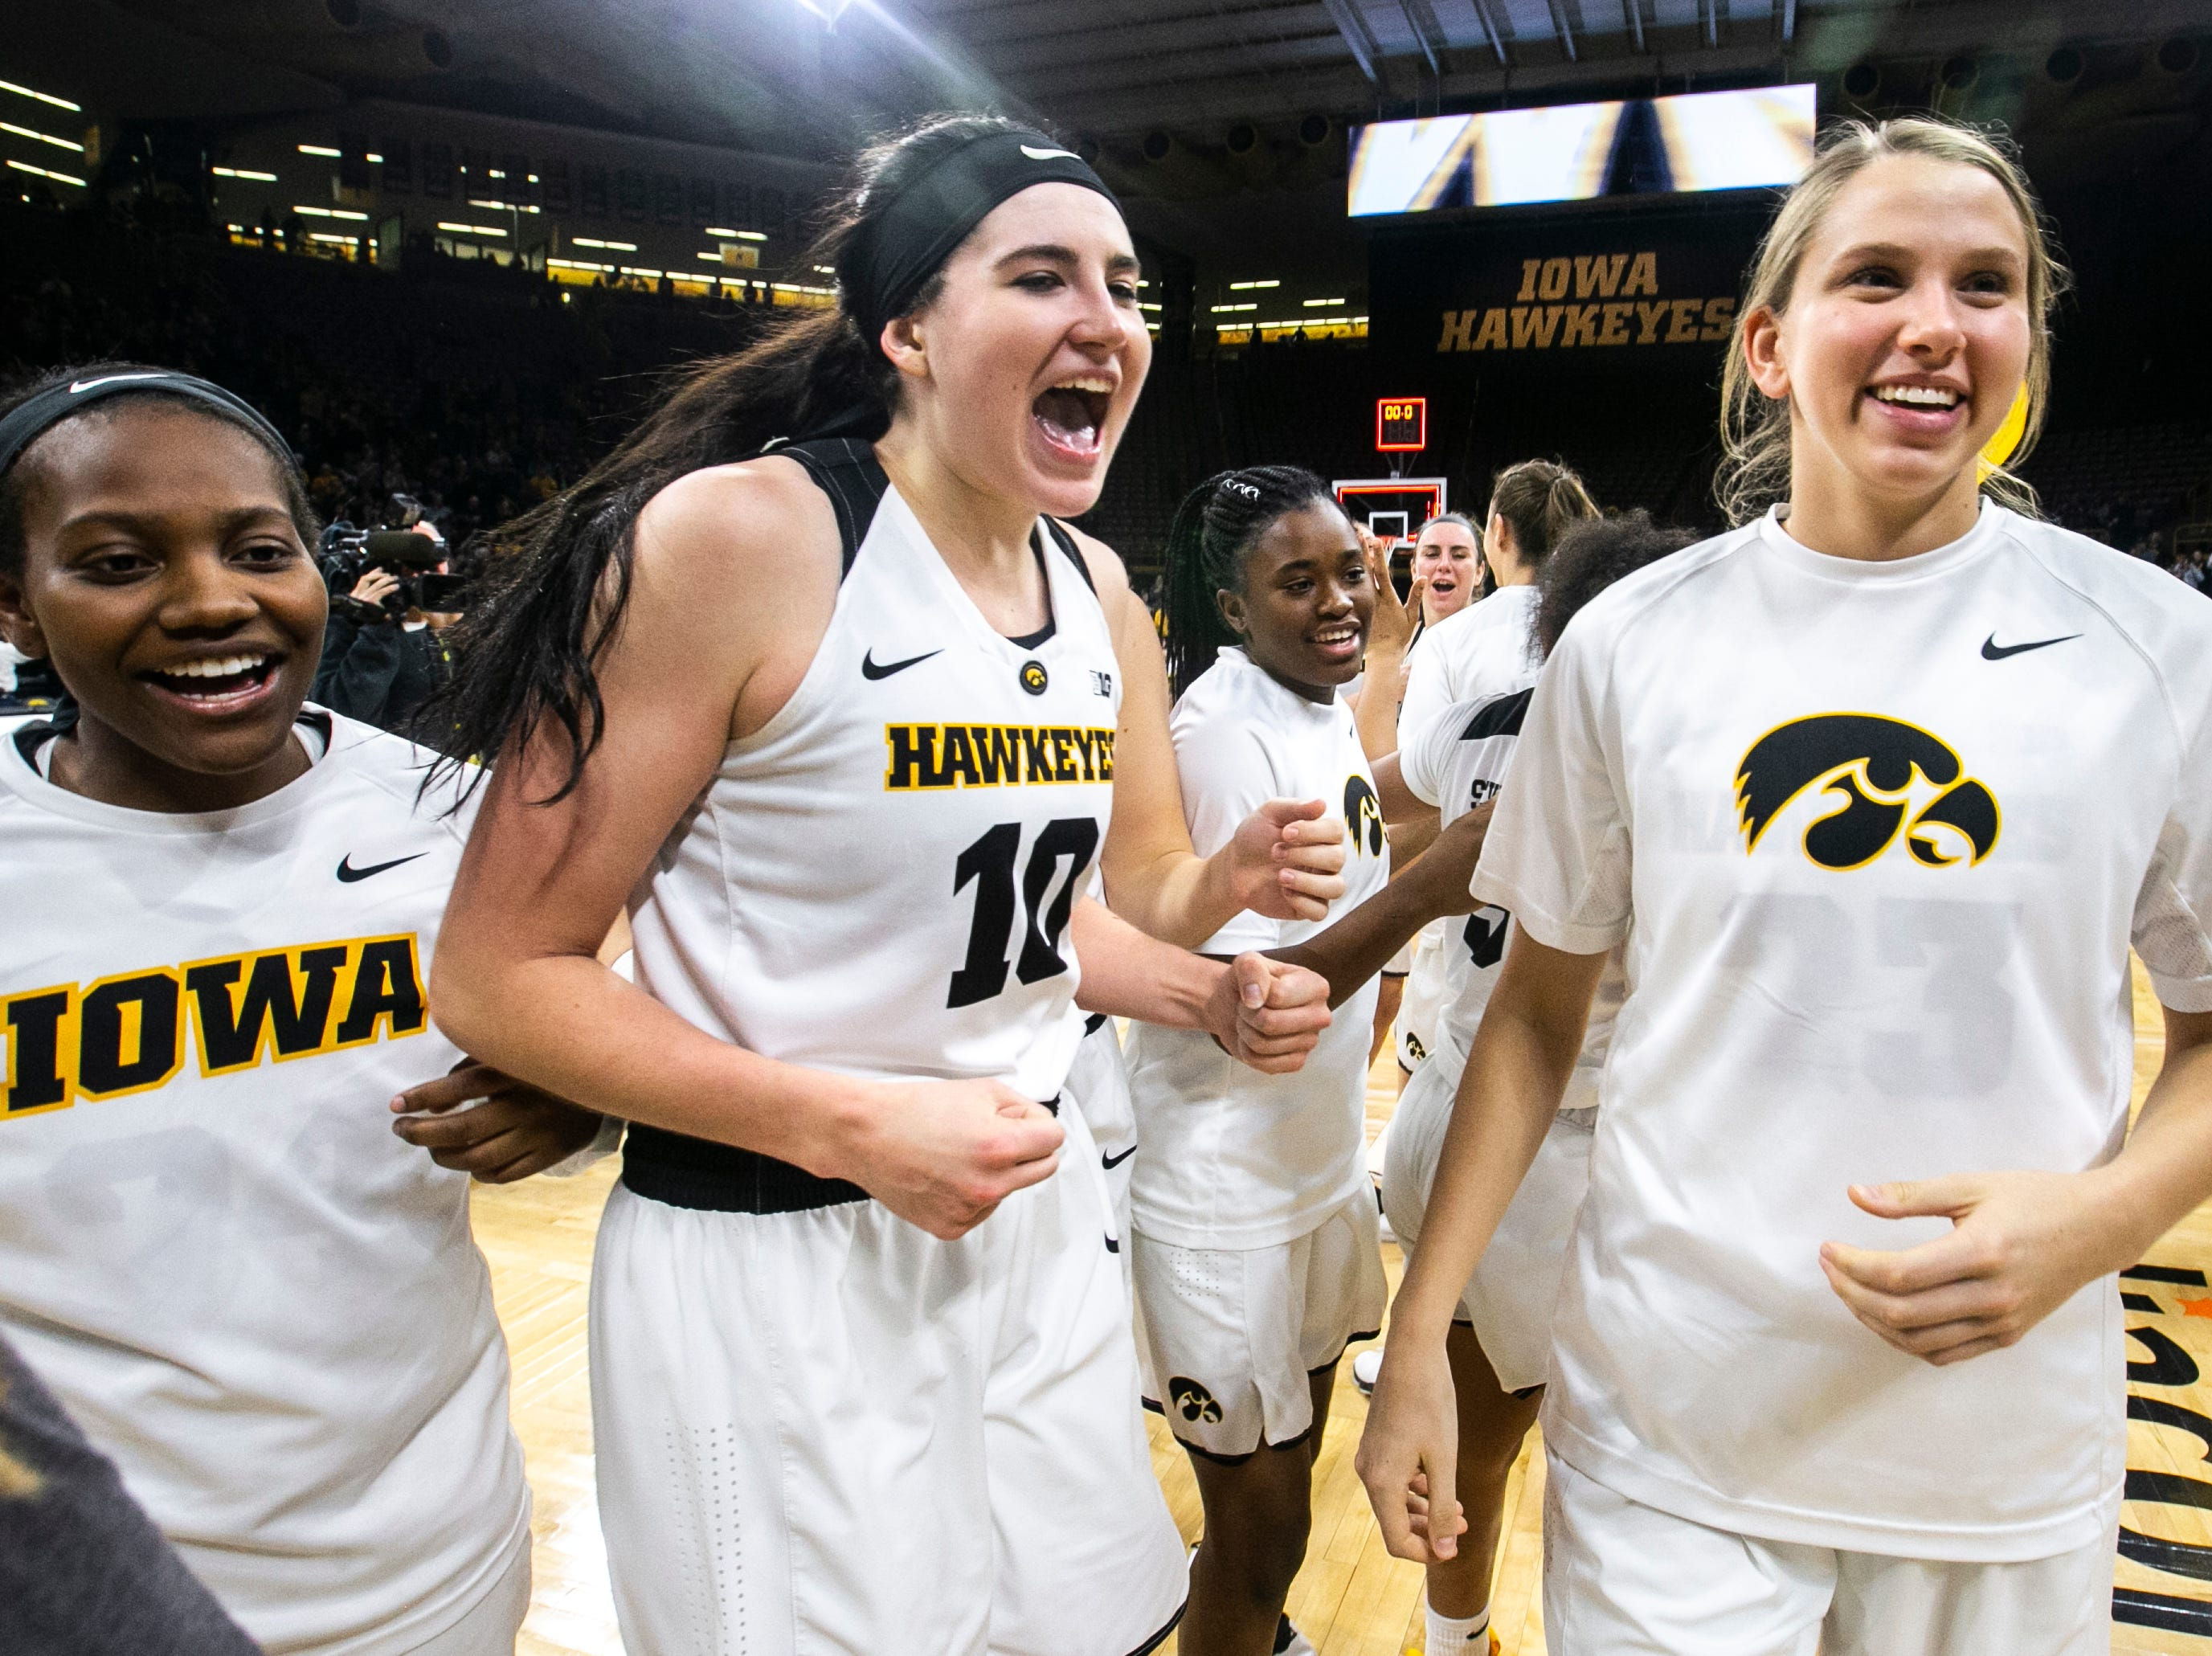 Iowa forward Megan Gustafson (10) celebrates with teammates Logan Cook, right, and Zion Sanders during a NCAA Big Ten Conference women's basketball game on Wednesday, Jan. 23, 2019, at Carver-Hawkeye Arena in Iowa City, Iowa.